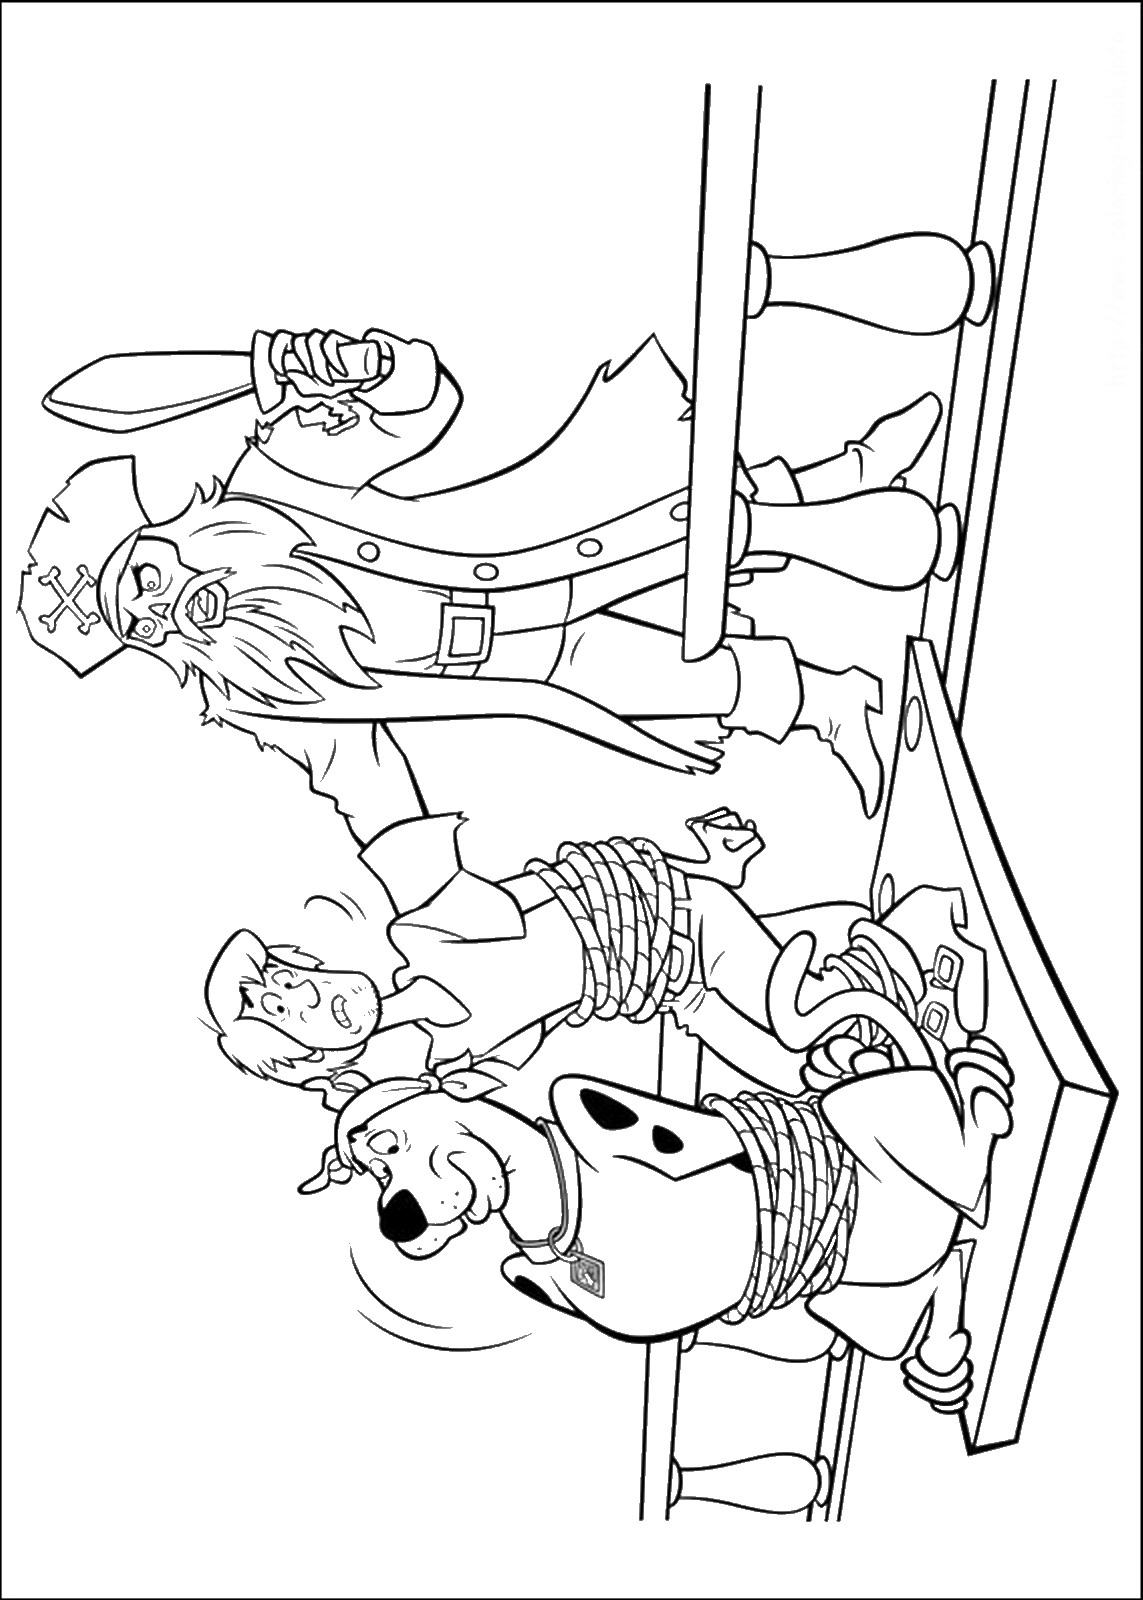 scooby doo coloring pages online free scooby doo coloring pages free online scooby pages doo coloring